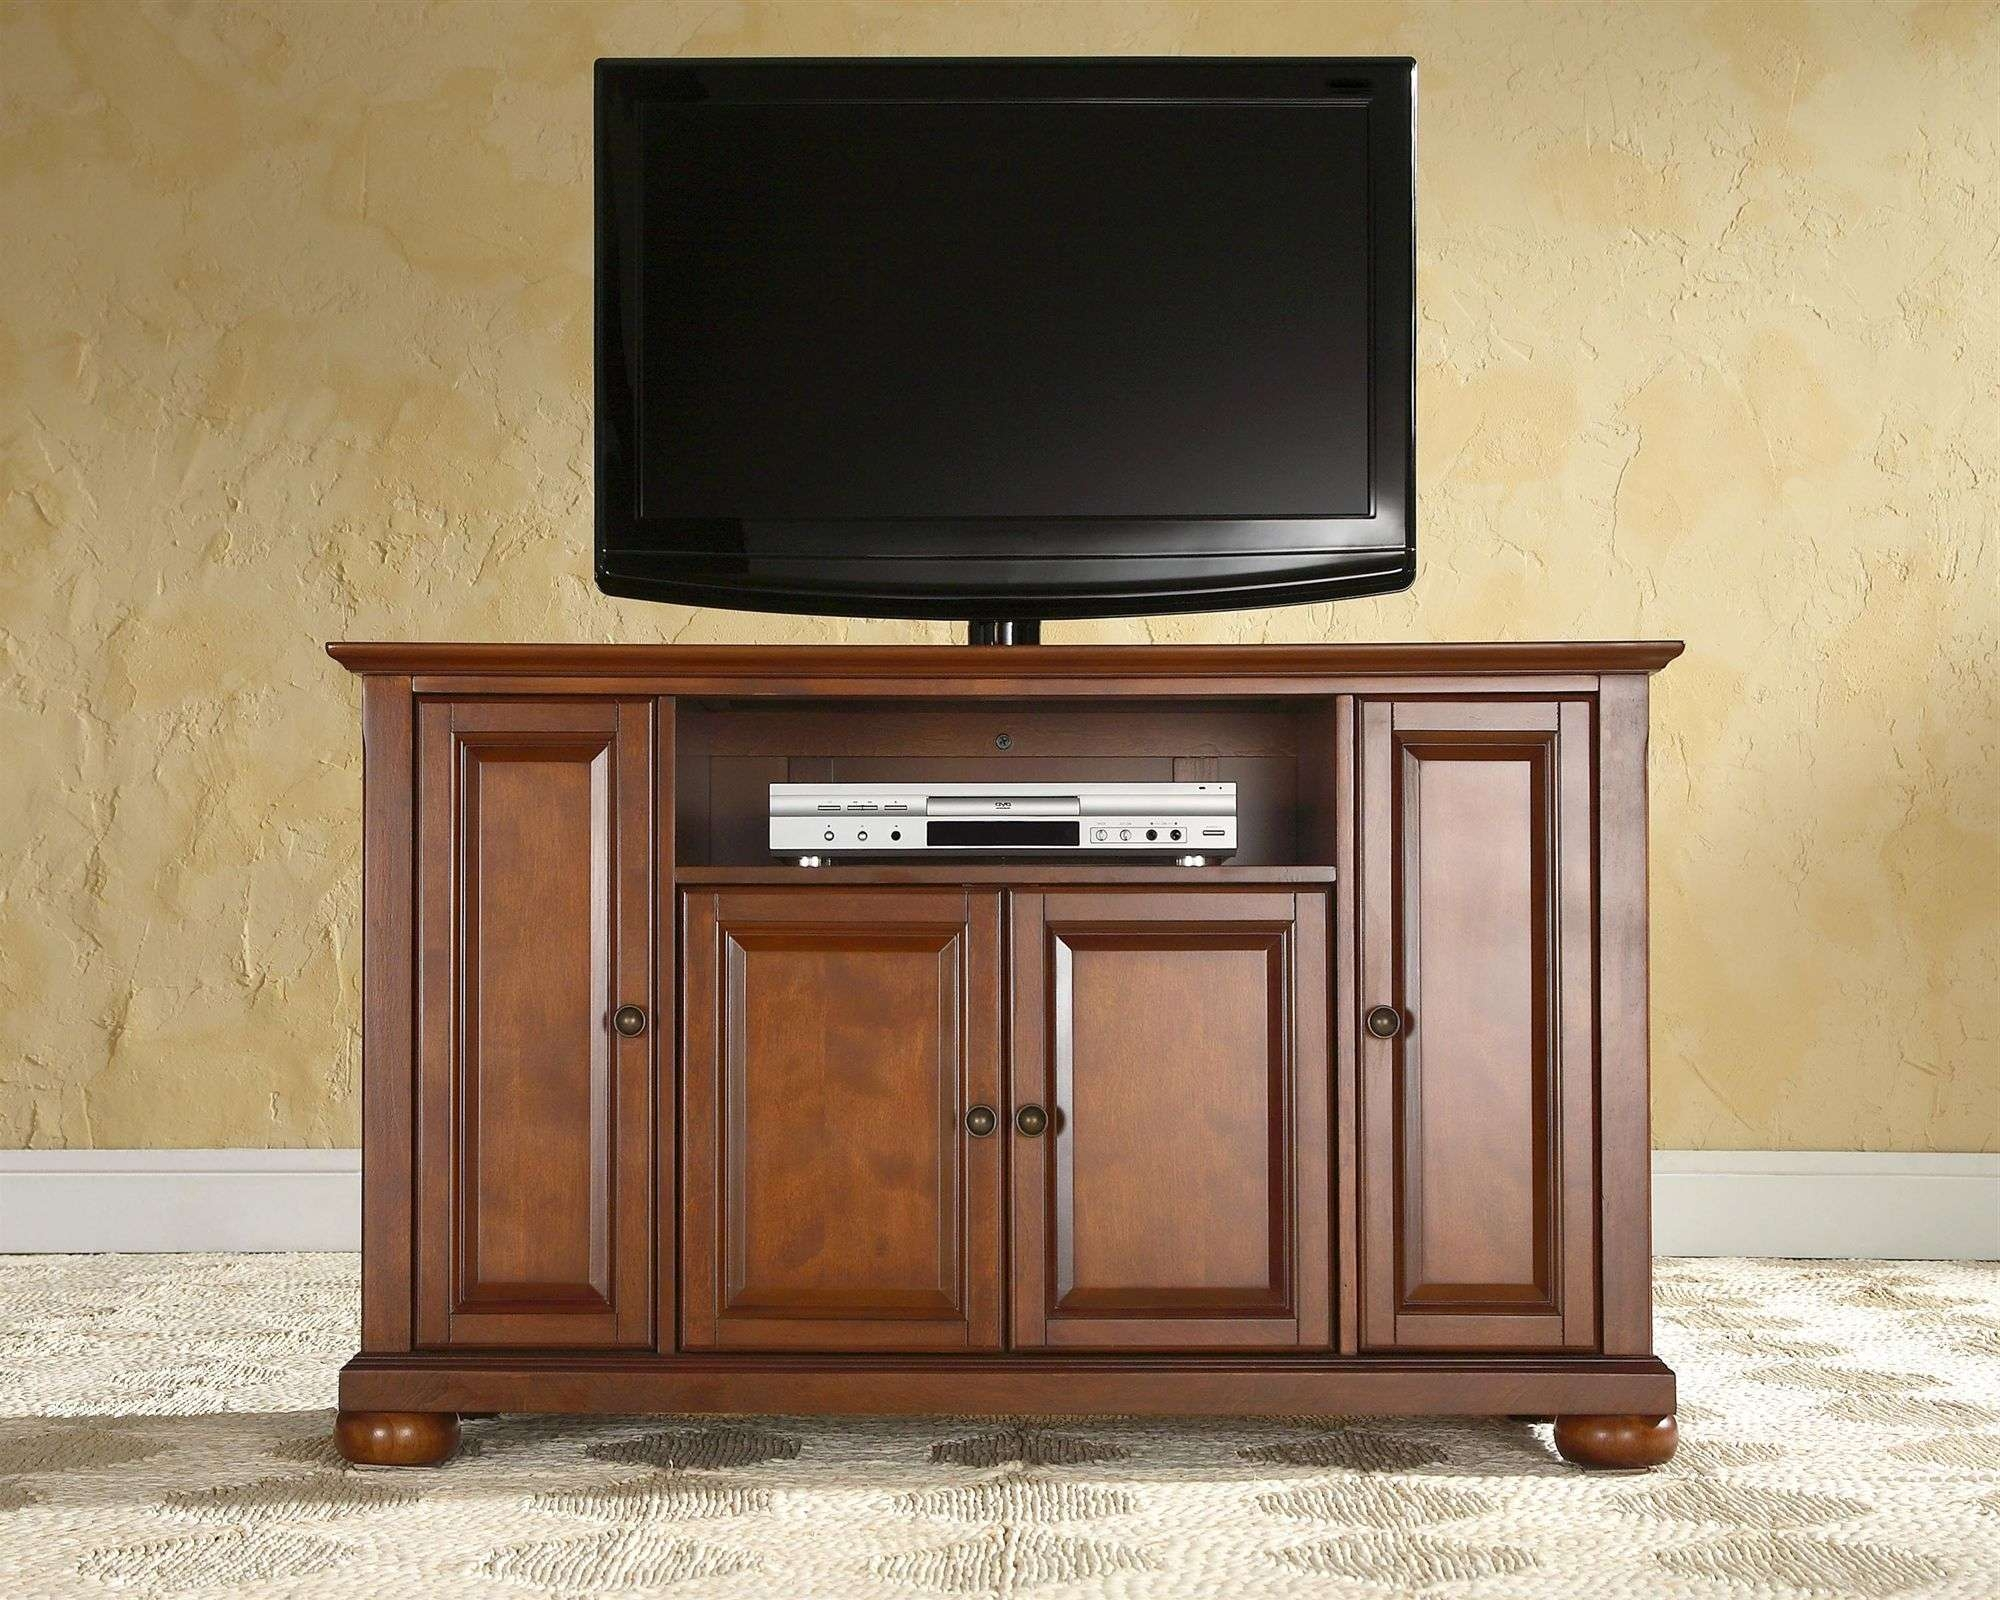 Tv Cabinet With Doors And Drawers In Stylish Flat Interior Brown Throughout Enclosed Tv Cabinets For Flat Screens With Doors (View 9 of 20)